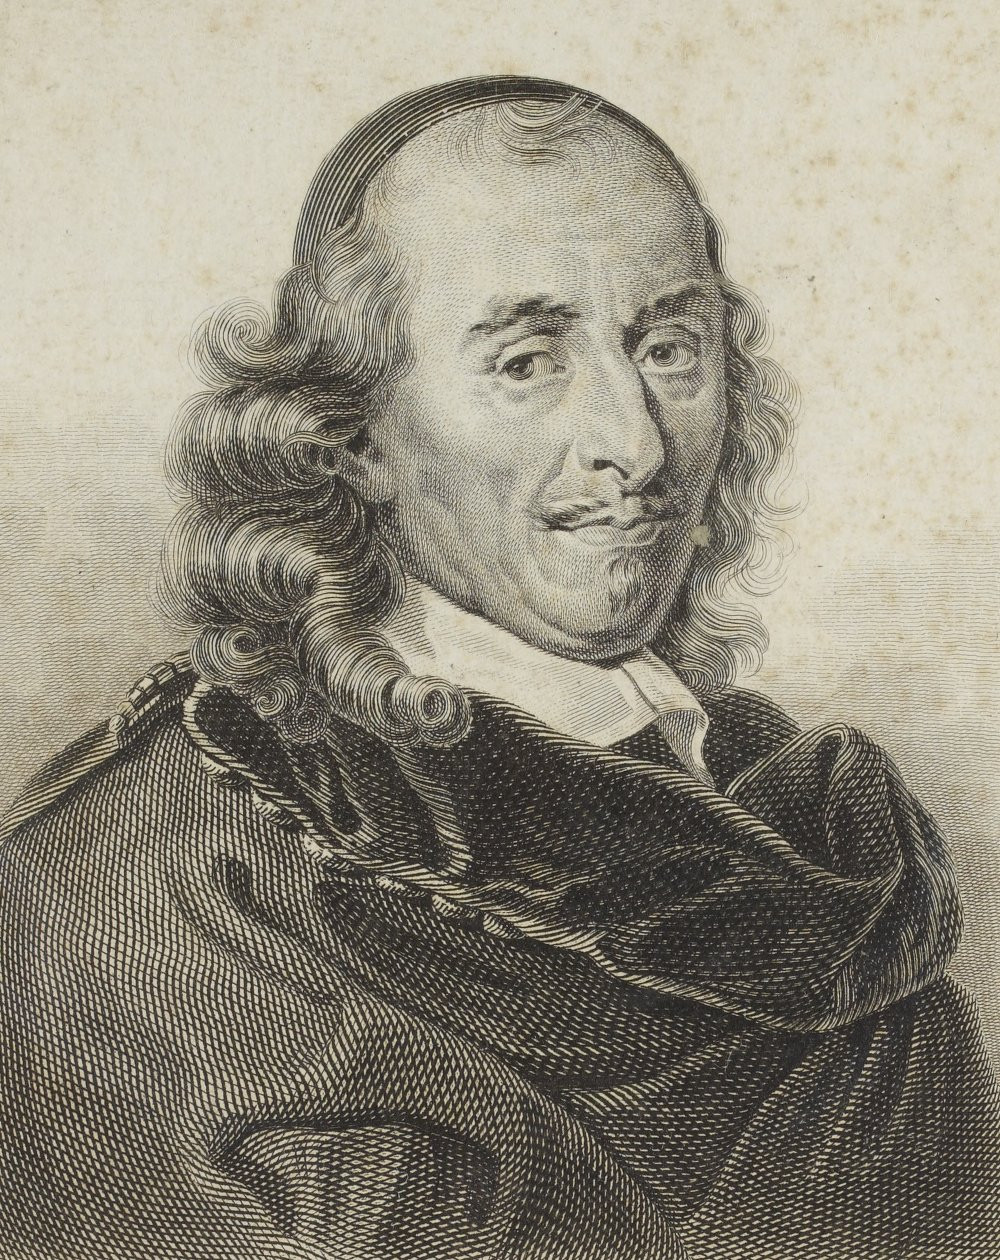 http://upload.wikimedia.org/wikipedia/commons/5/57/Gravure_Pierre_Corneille.jpg